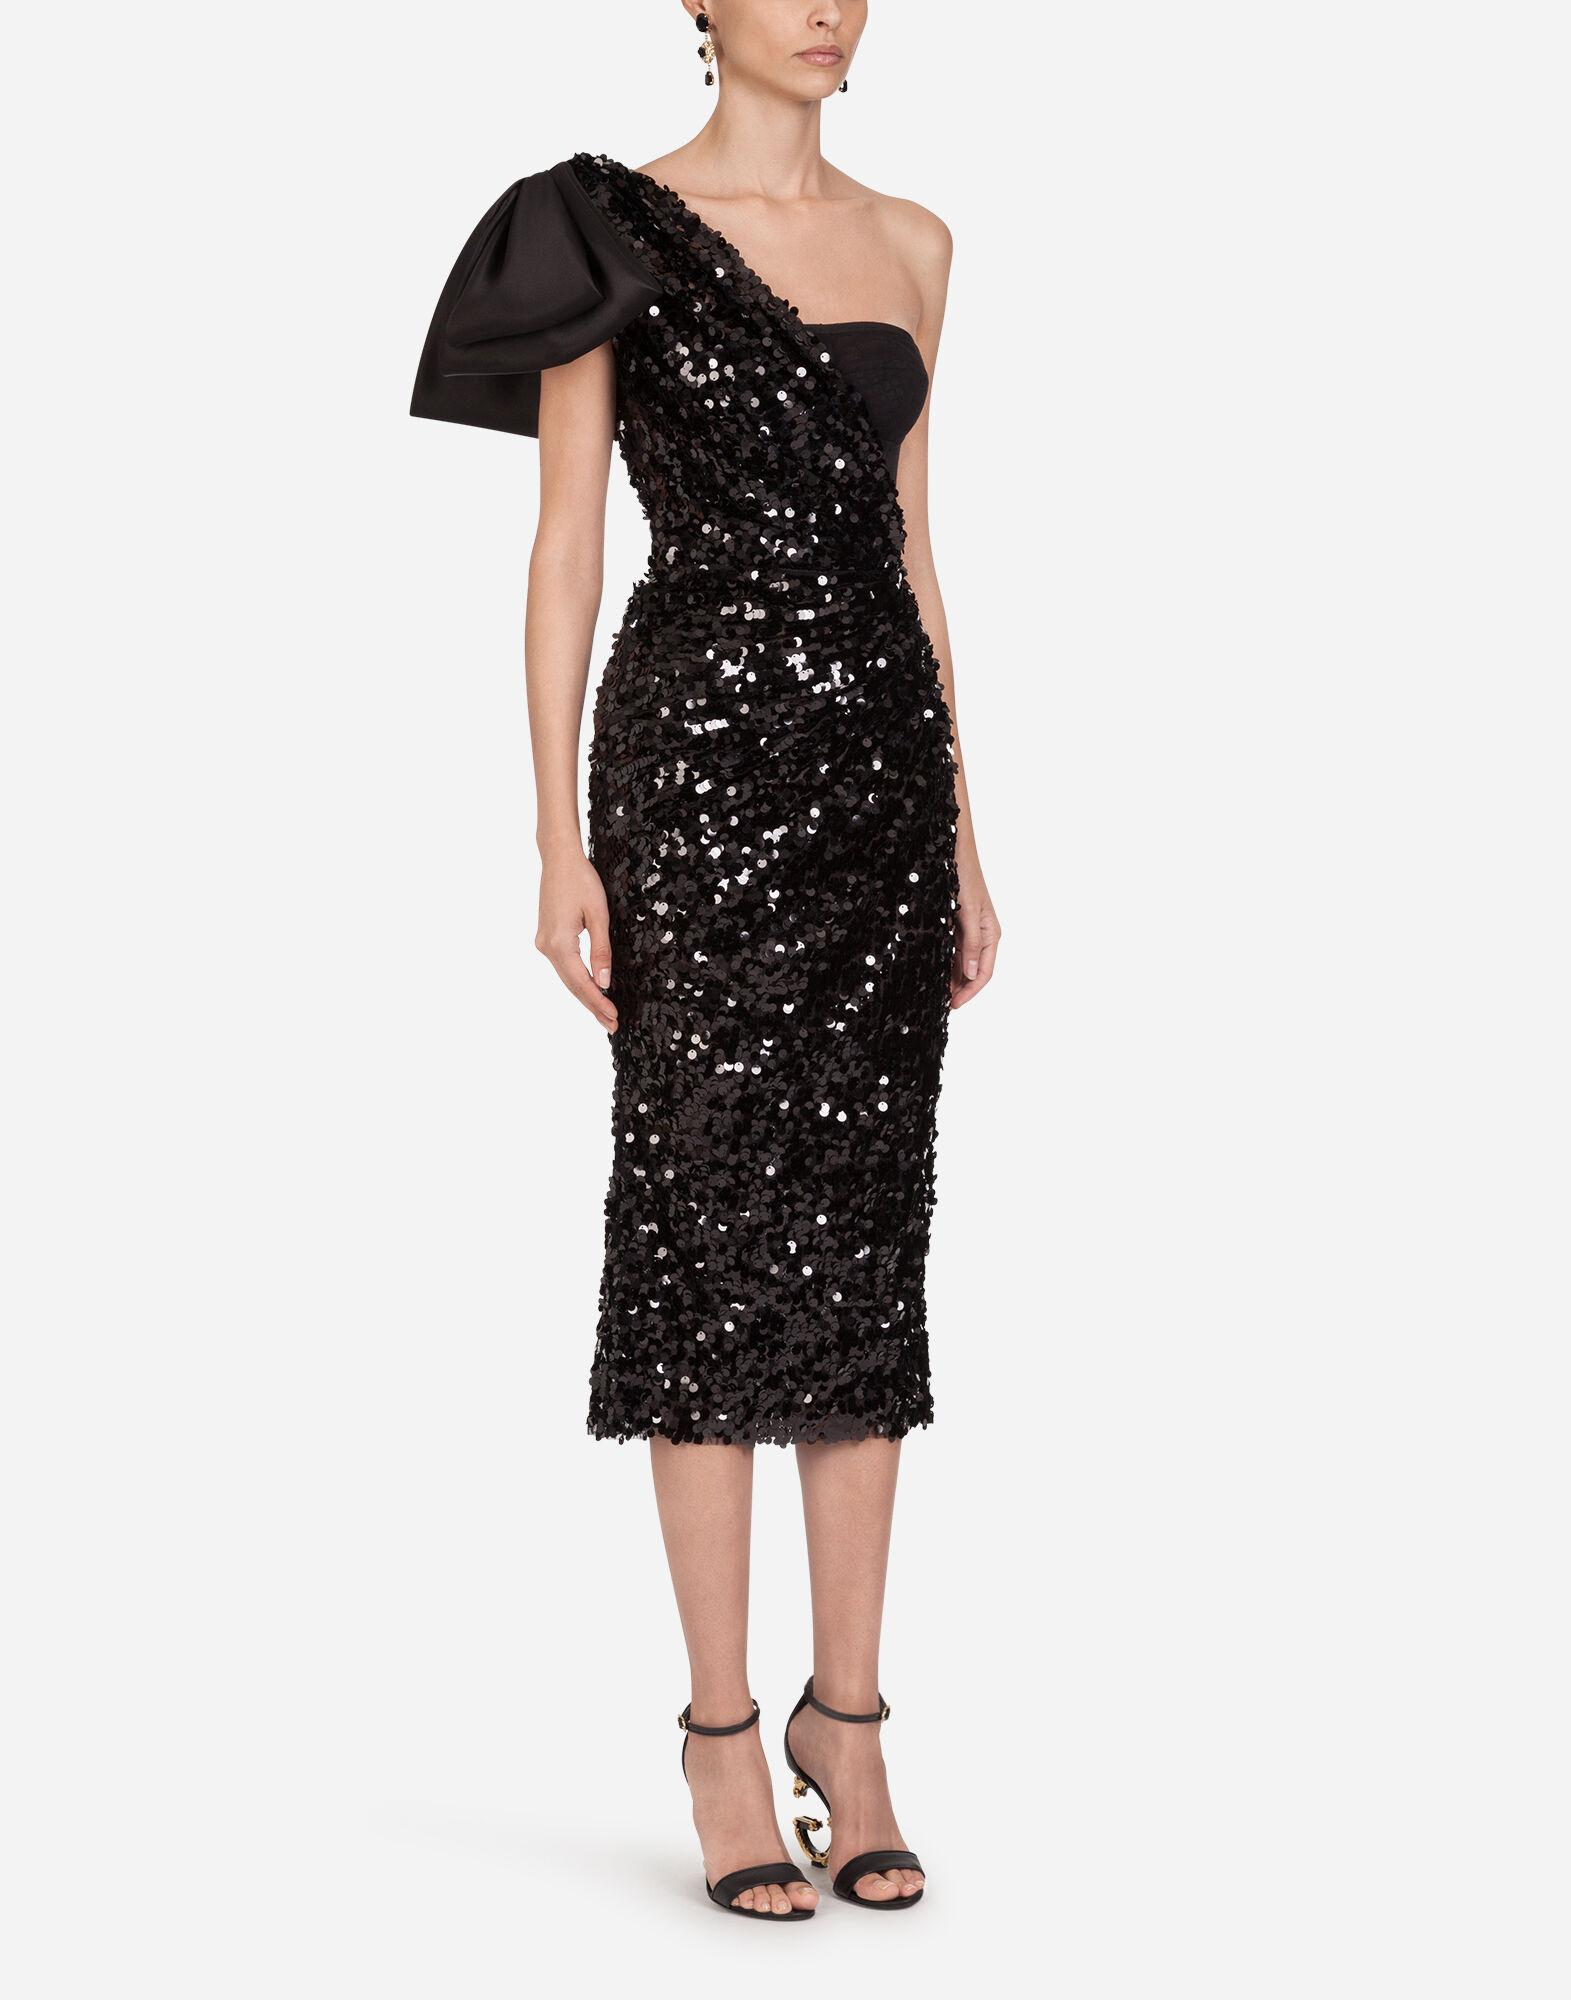 Sequined longuette dress with bow